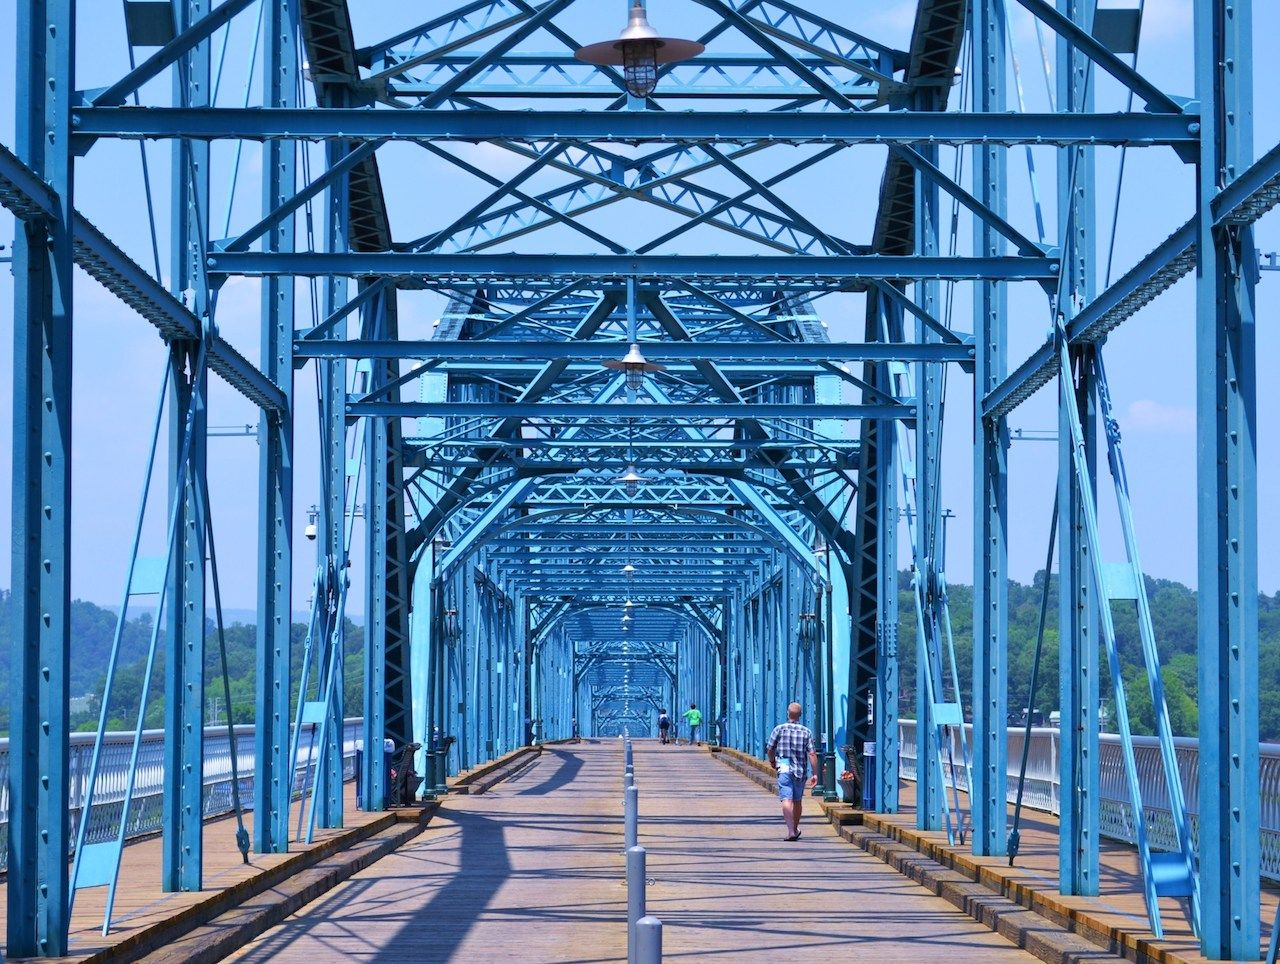 The Blue Walnut Street Bridge in Chattanooga, Tennessee